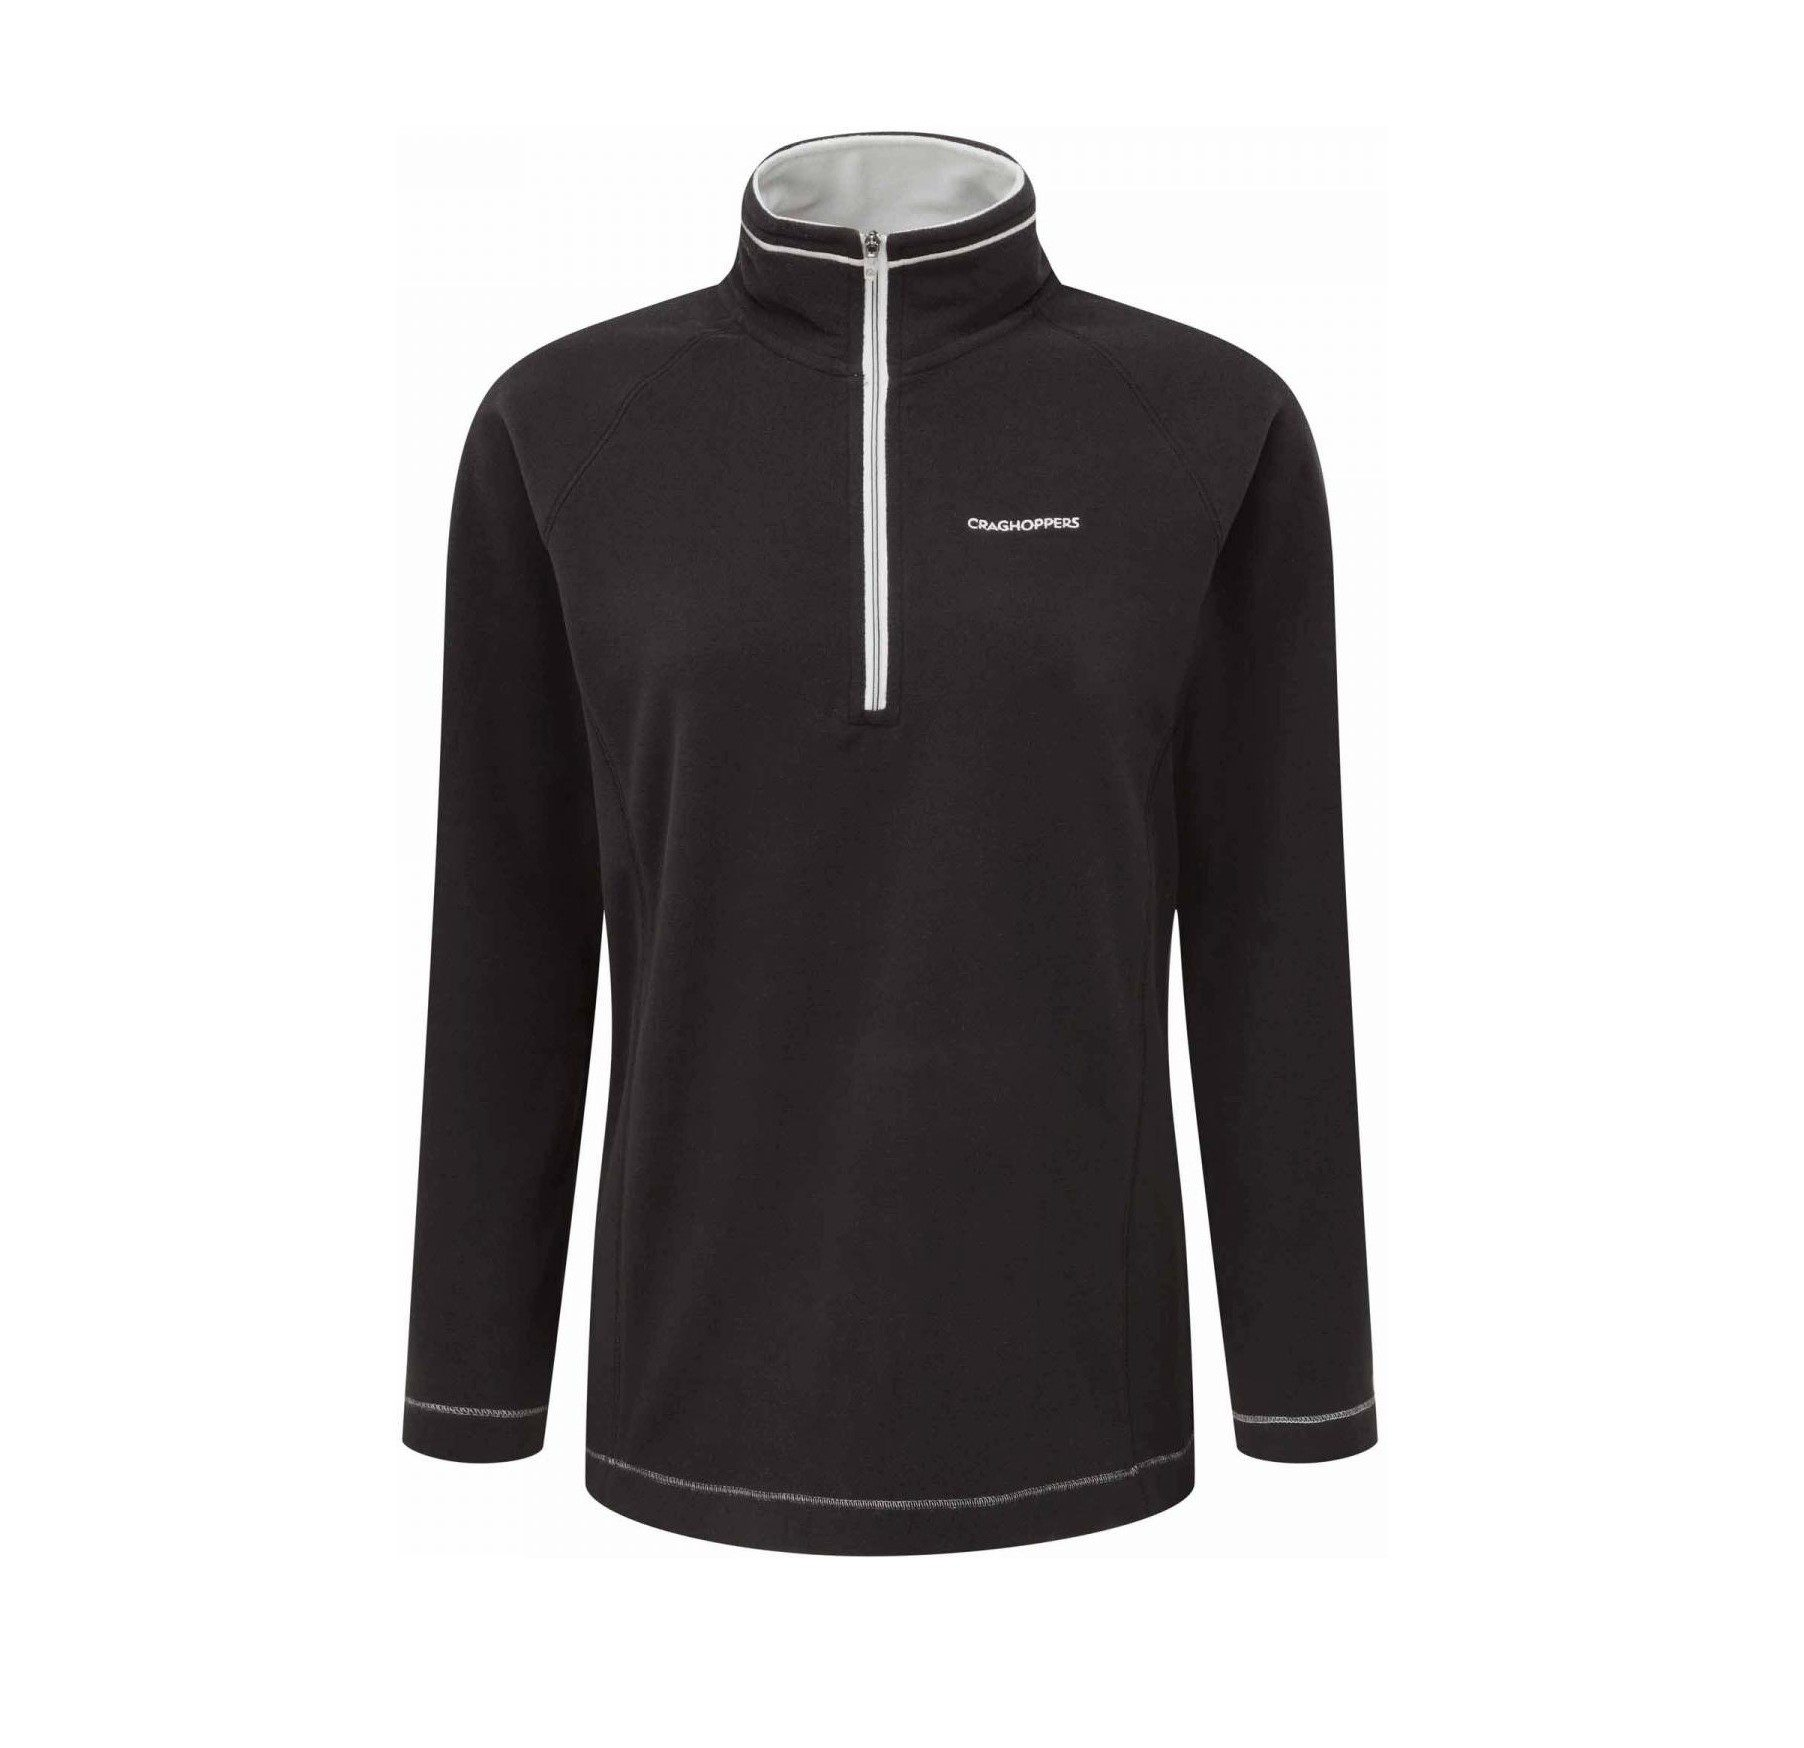 Craghoppers Seline Half Zip Fleece - Black